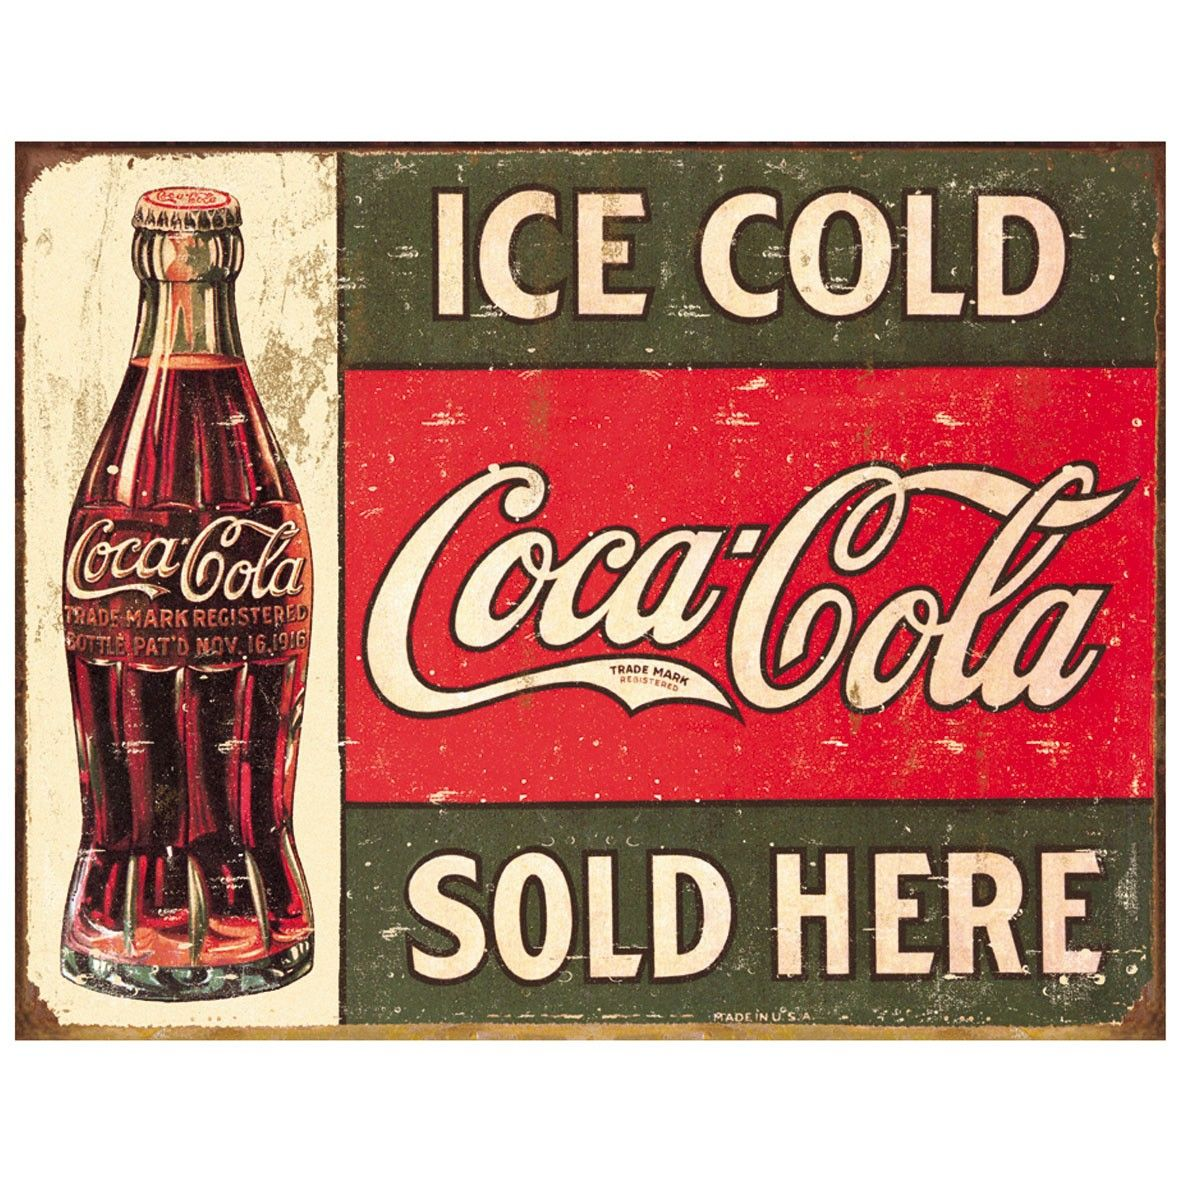 Coca Cola Ice Cold Coke Sold Here Tinplate Metal Sign | Tin Plate ...